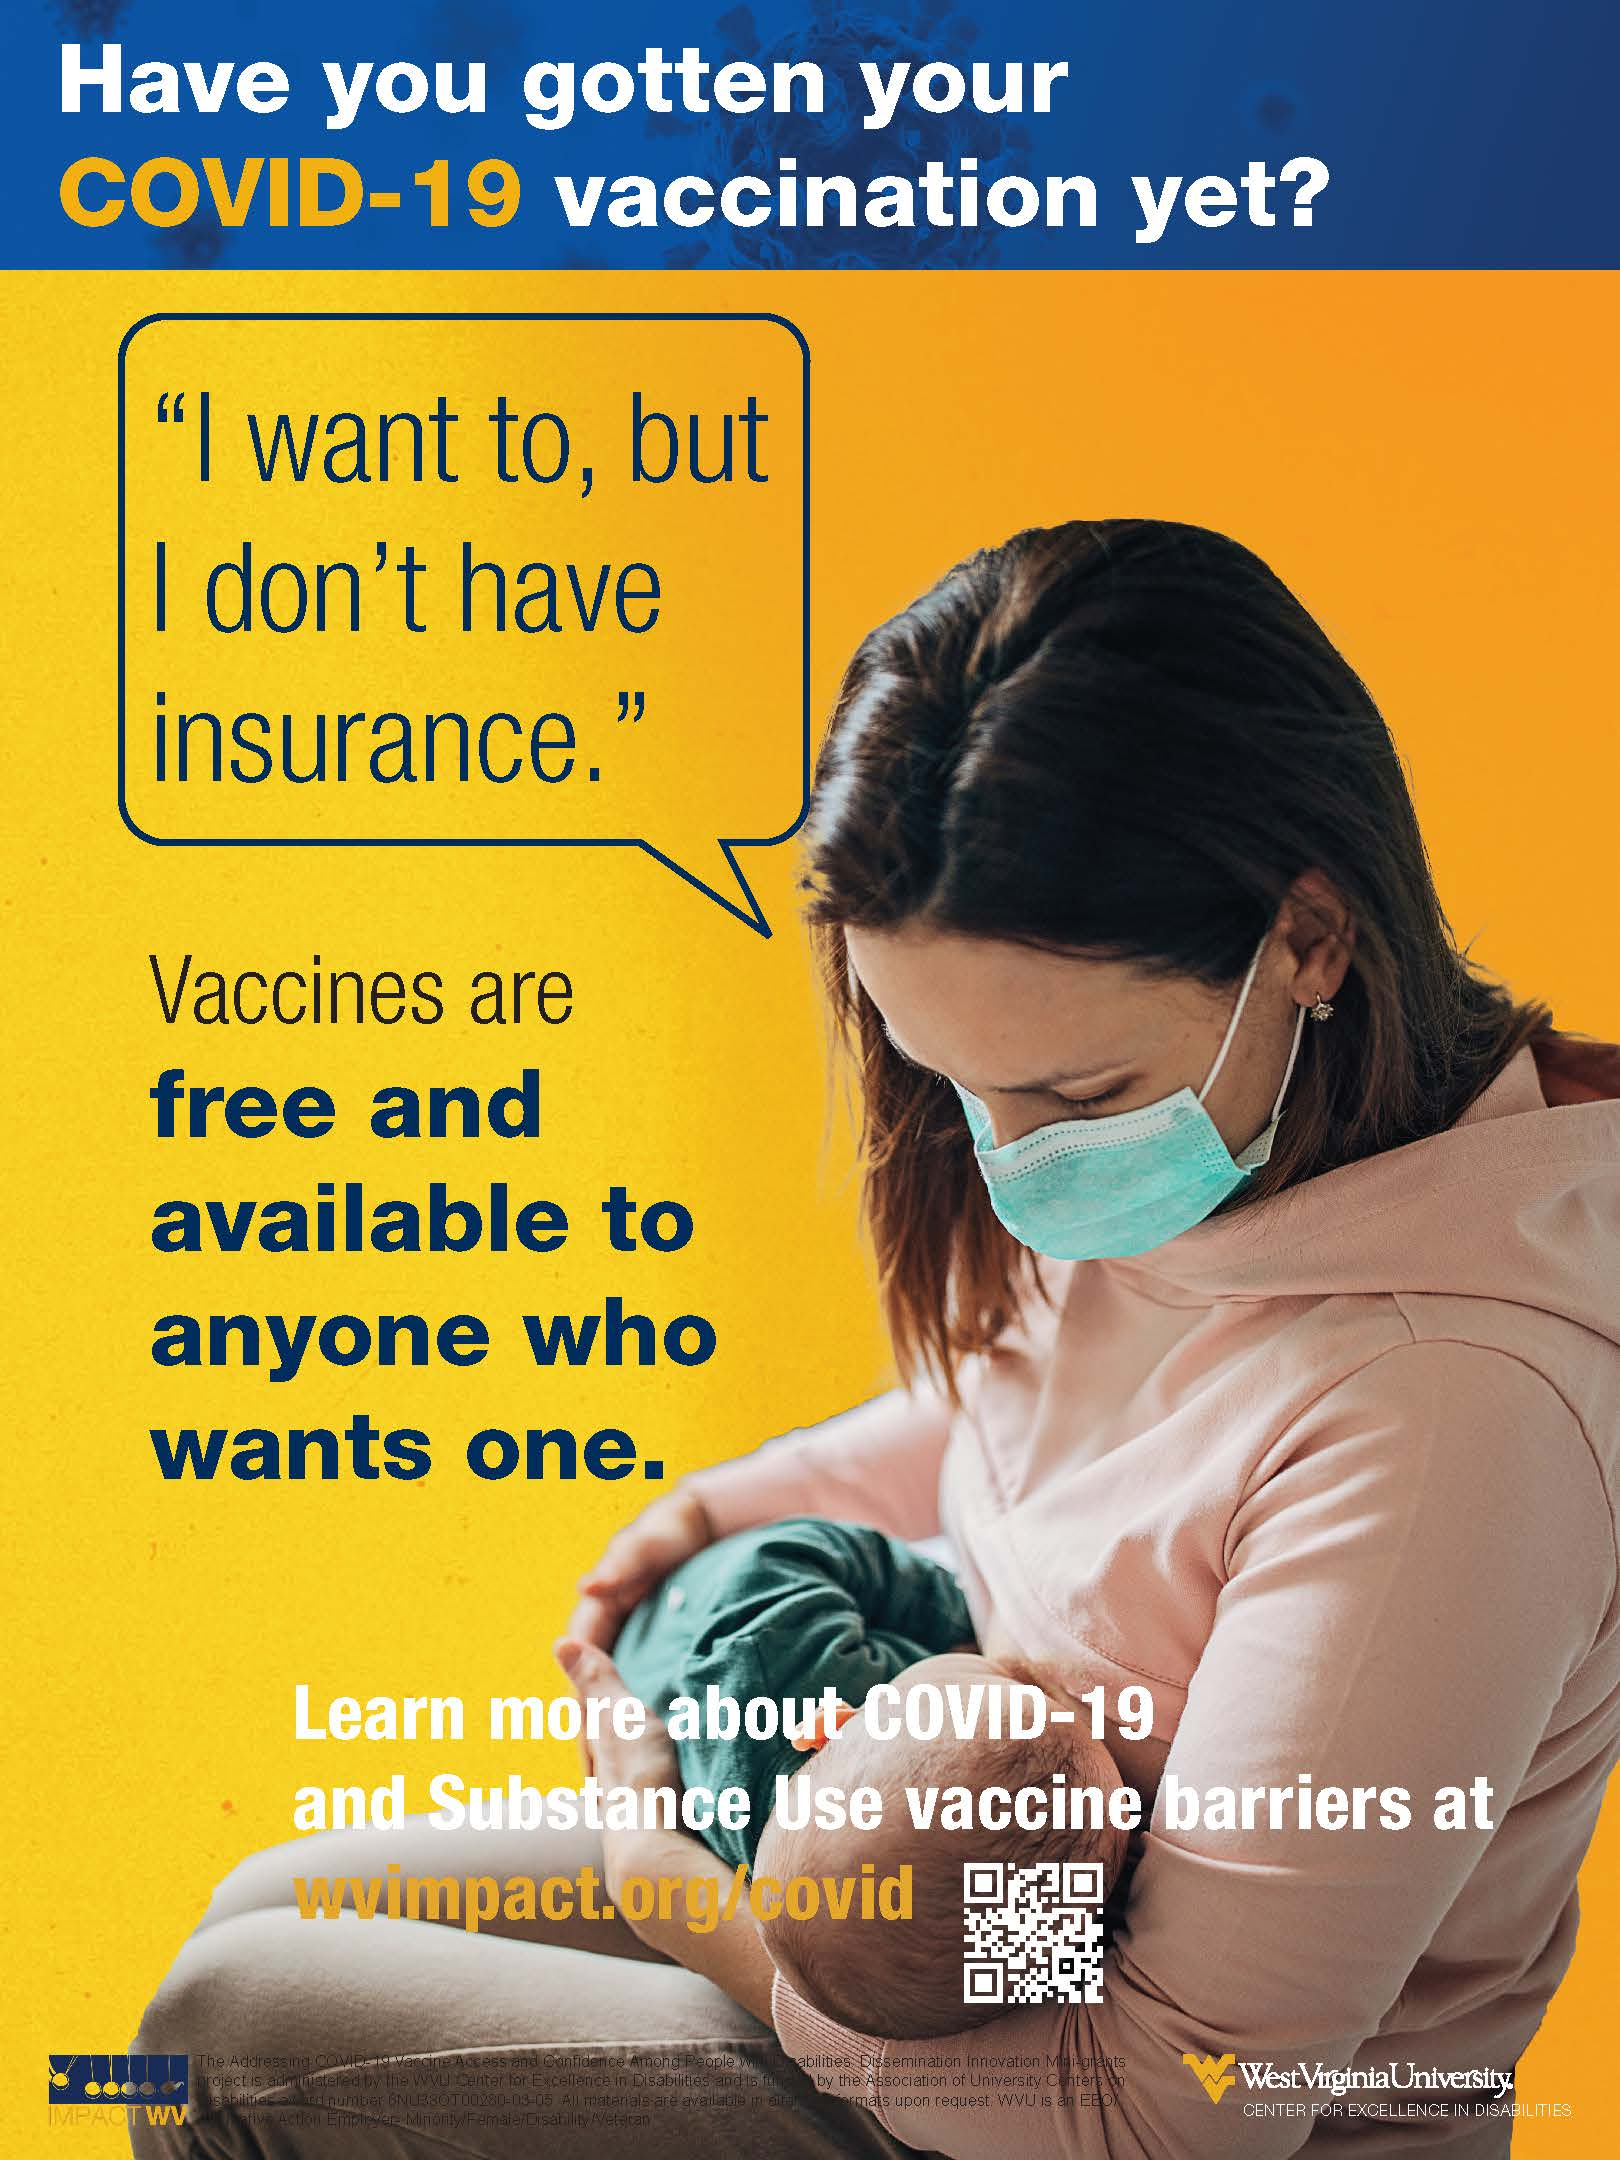 an image with the vaccines are free and available text featuring a mother holding her infant